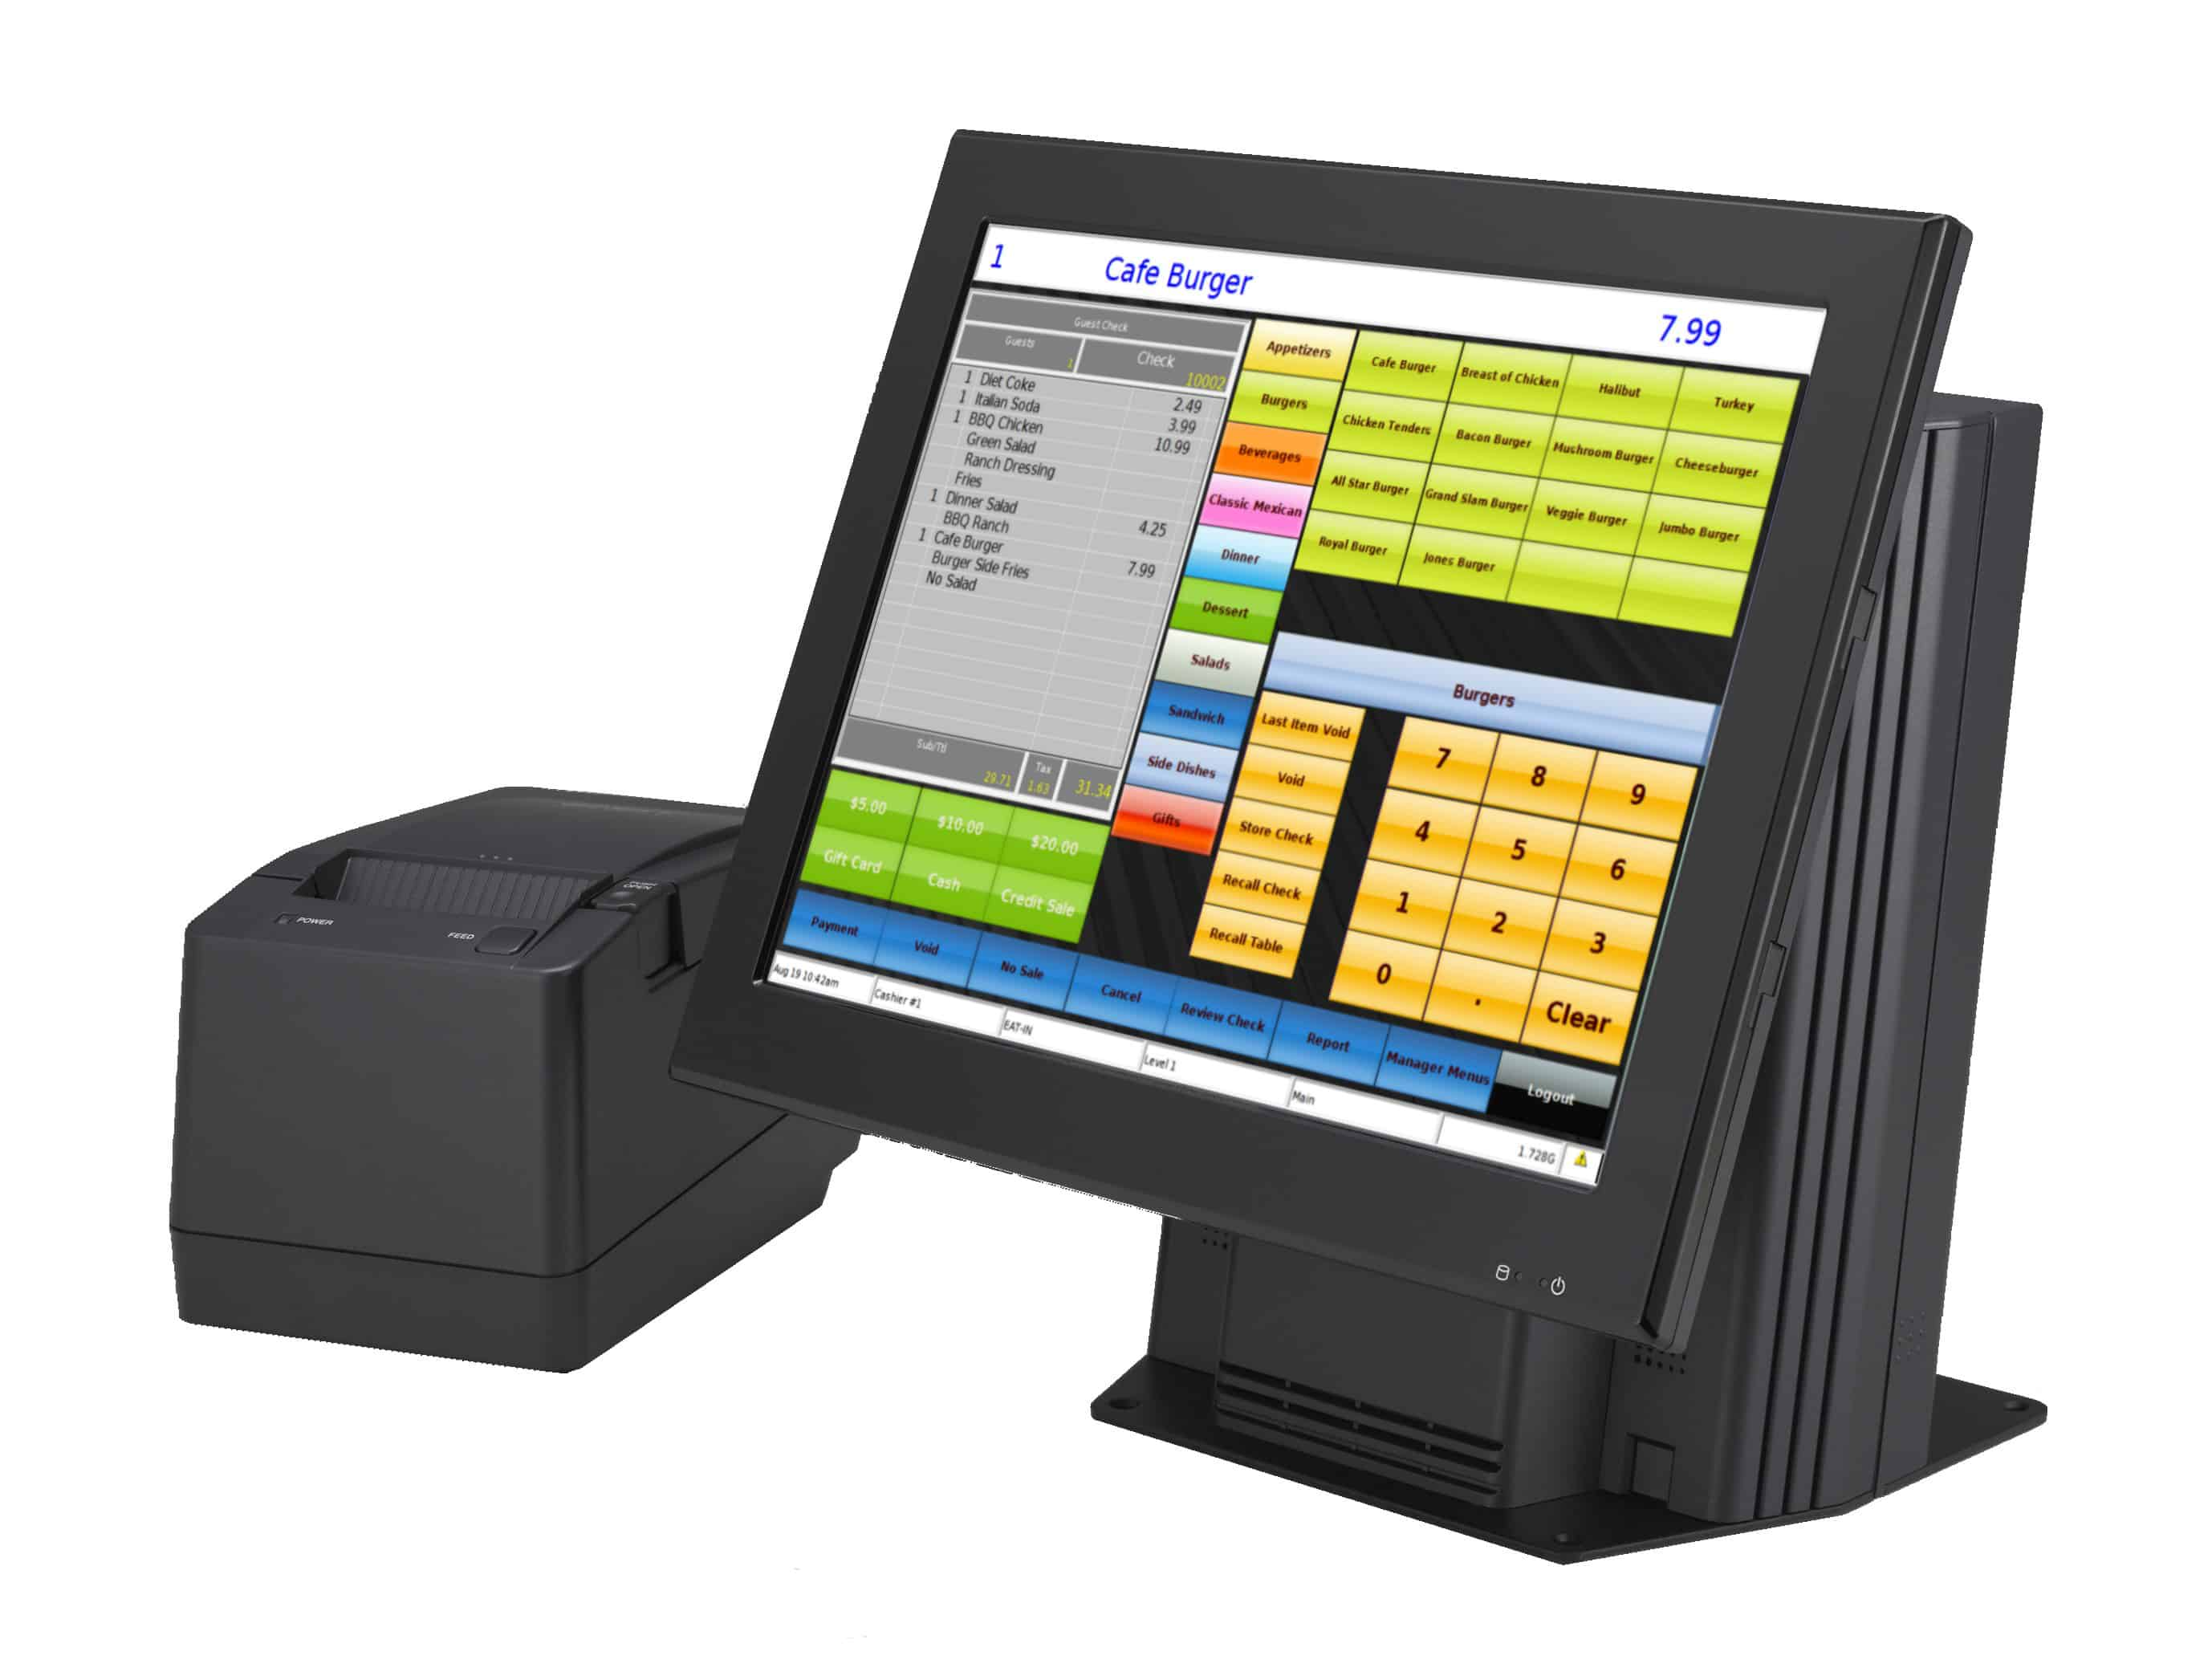 Key Features of 3 Top Clover POS Systems